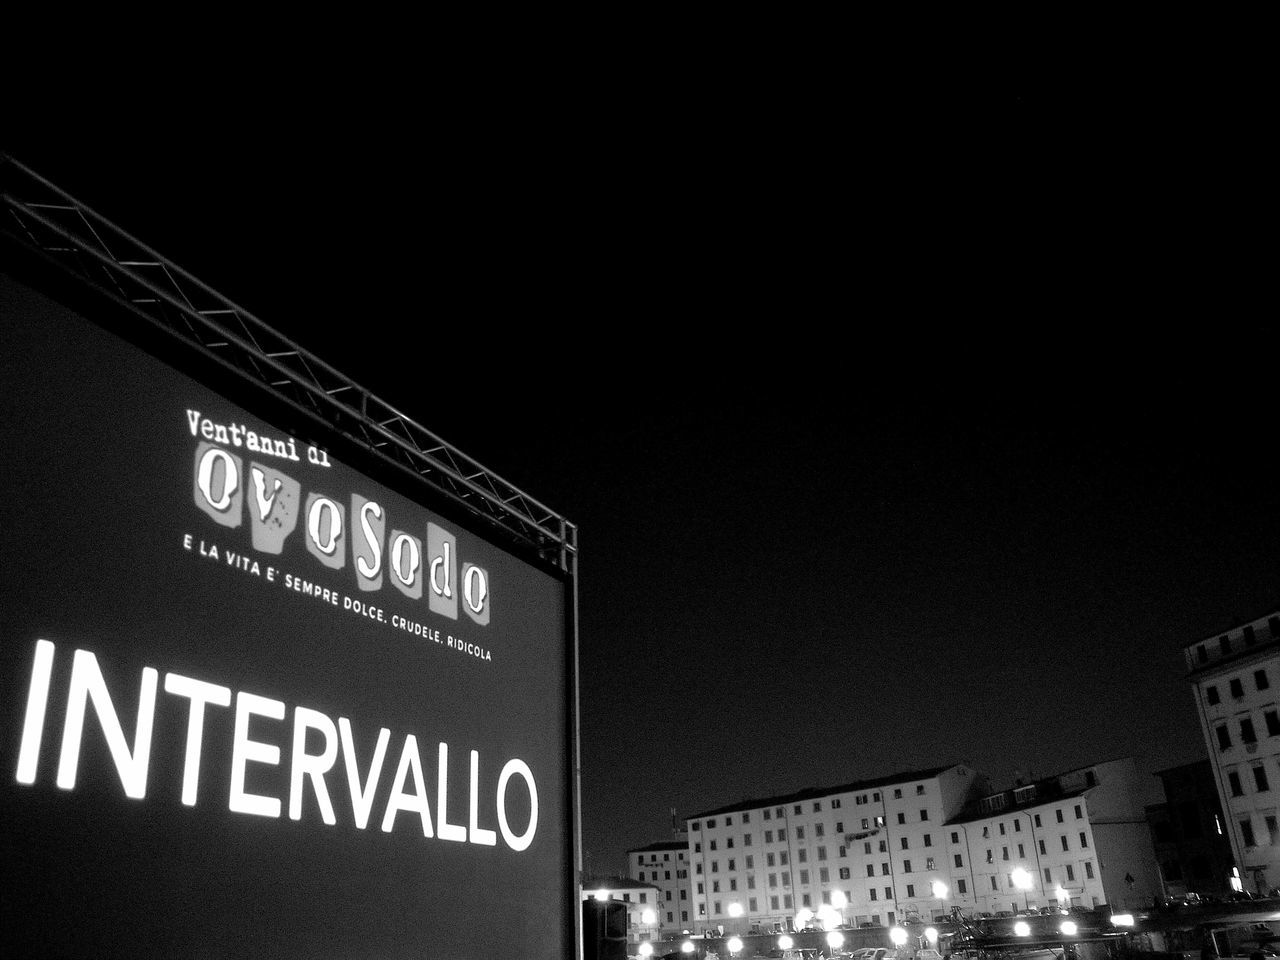 Night Illuminated Text Architecture Built Structure Communication Building Exterior No People Proiection Anniversary Film Low Angle View Cinema Black And White Photography City Outdoors una città sospesa